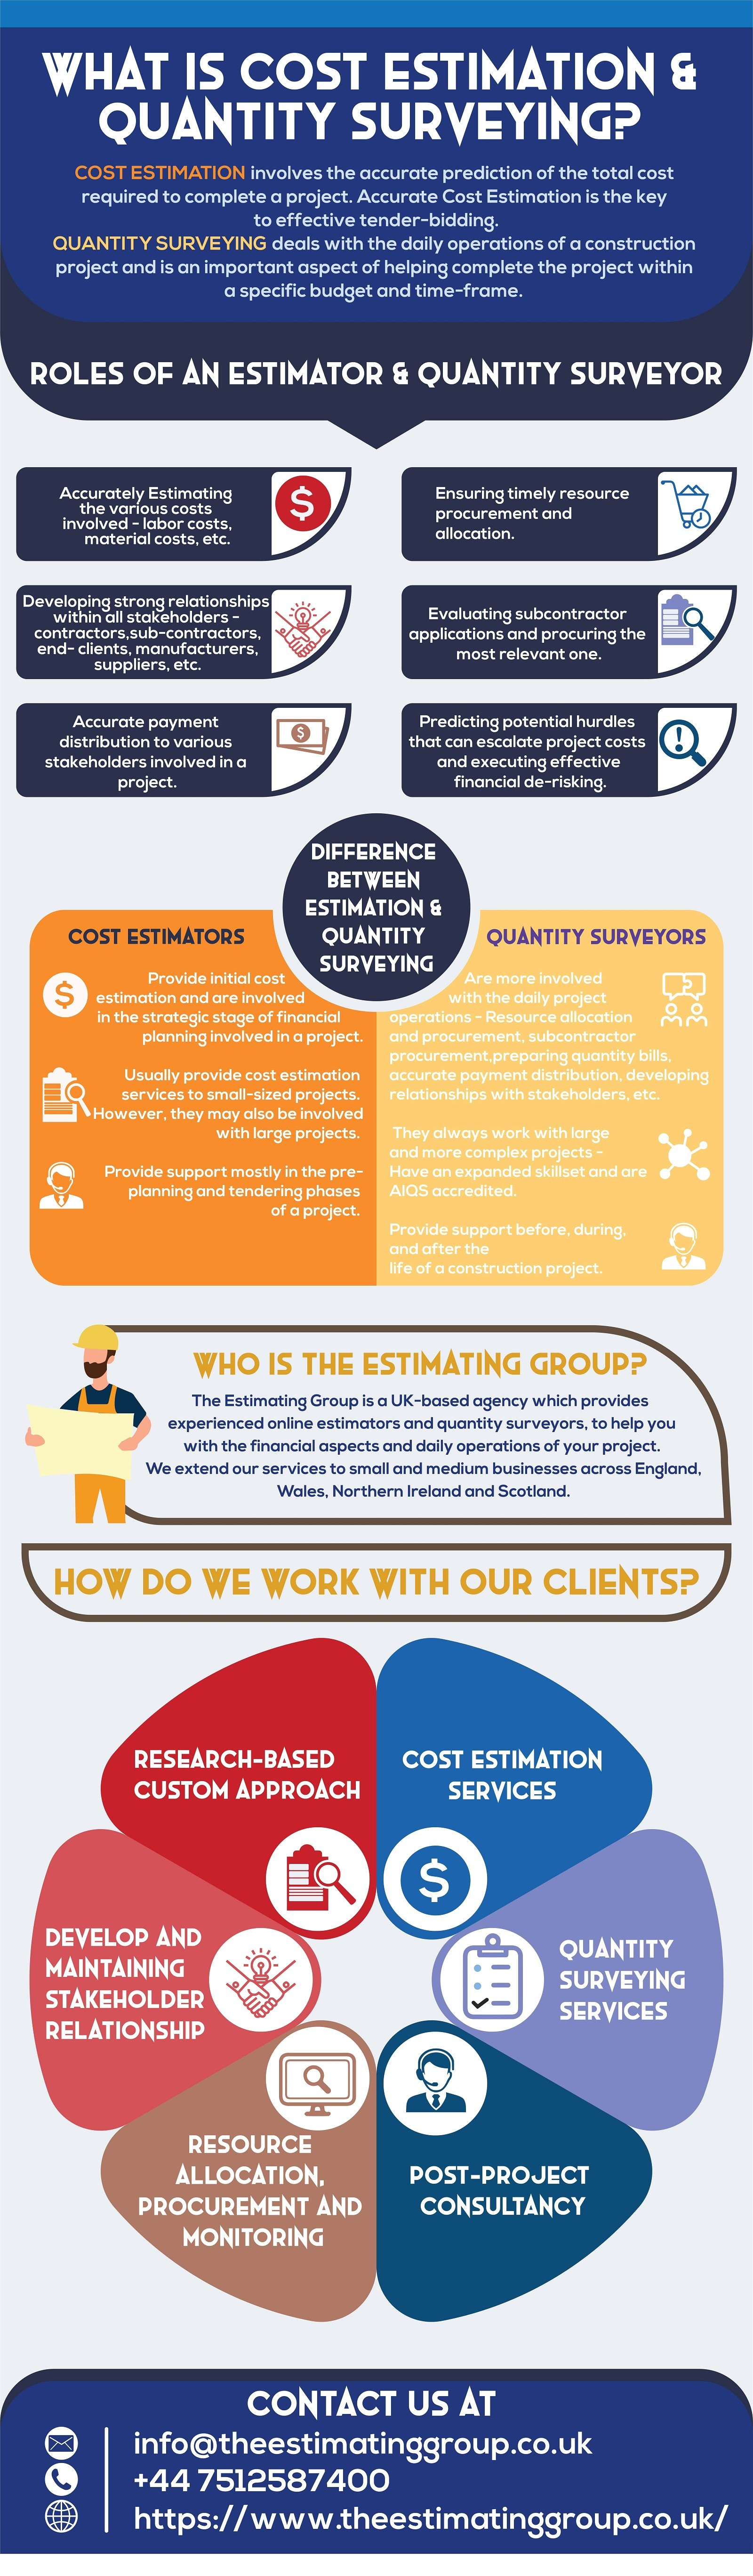 Estimating Services in uk - The Estimating Group